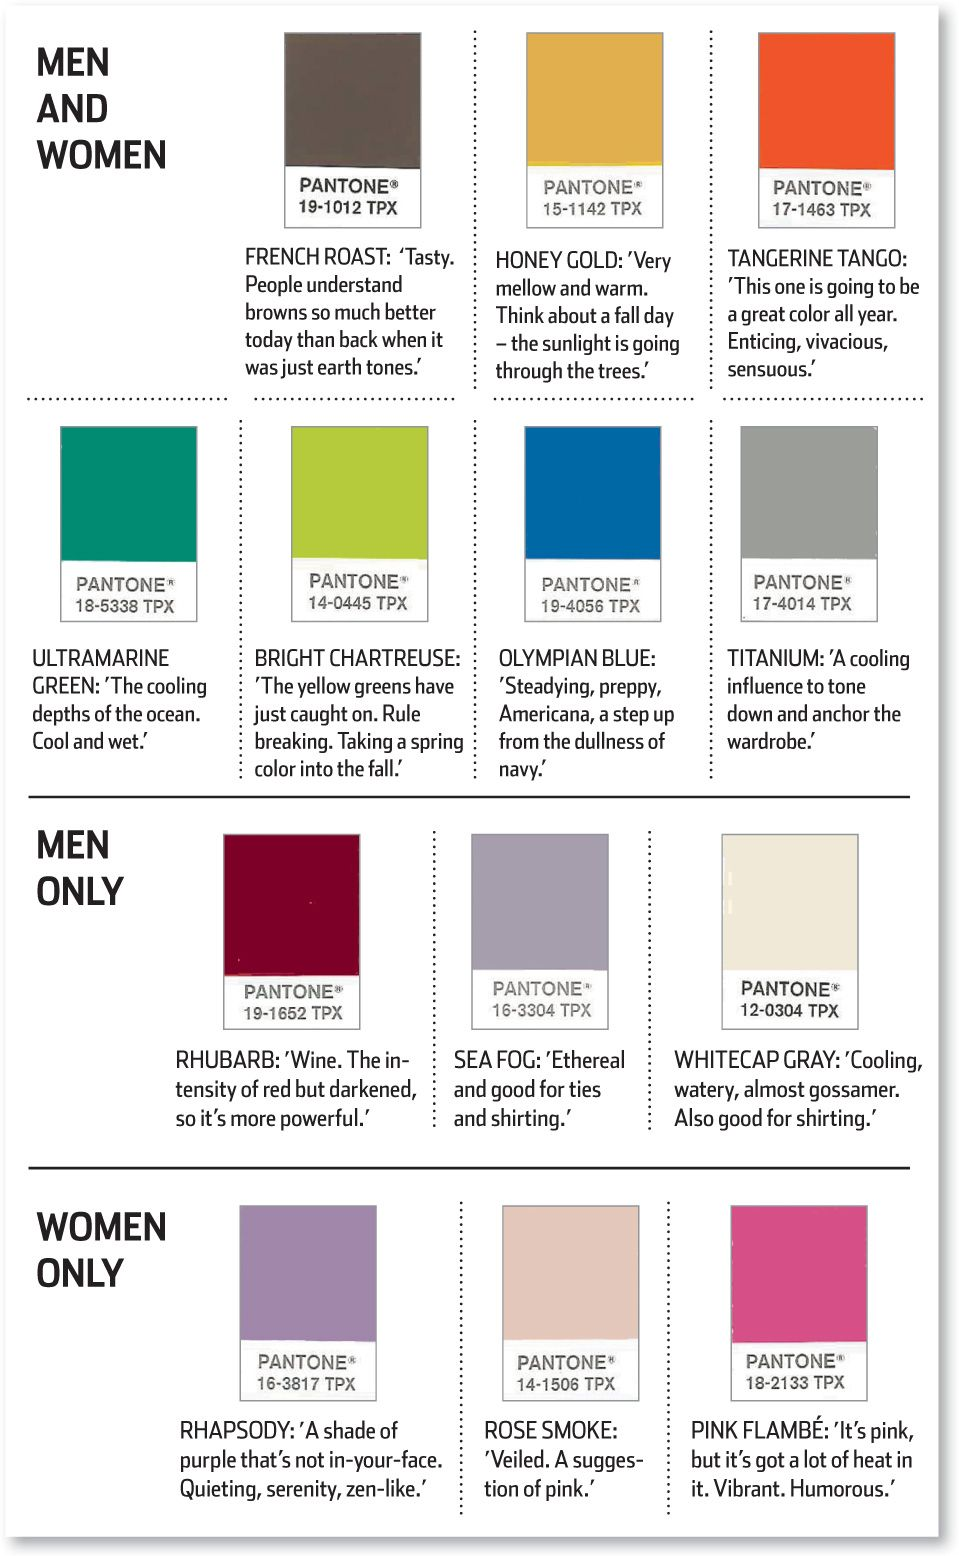 Pantone Releases Most Popular Colors For Fall Winter 2012